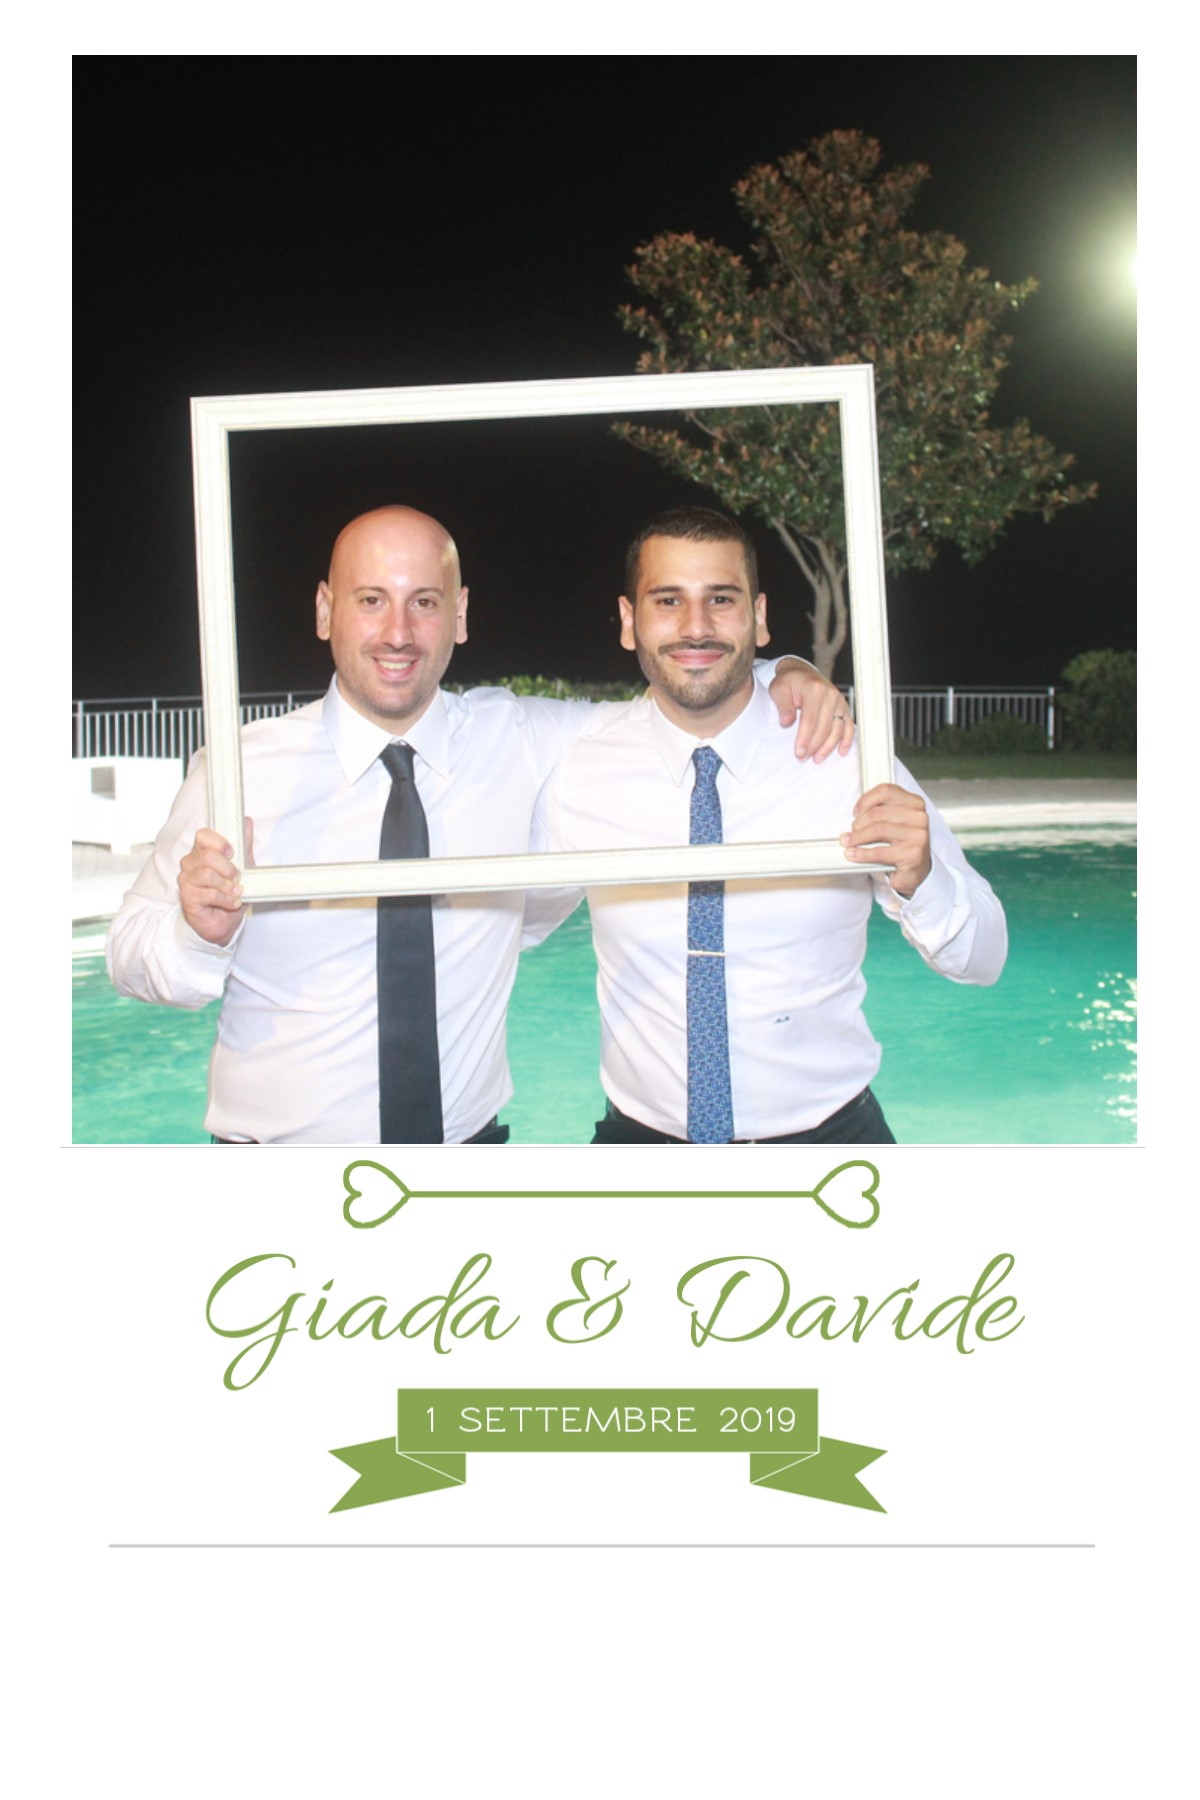 patrizi-fotografi-matrimoni-photobooth-giada-e-david-14